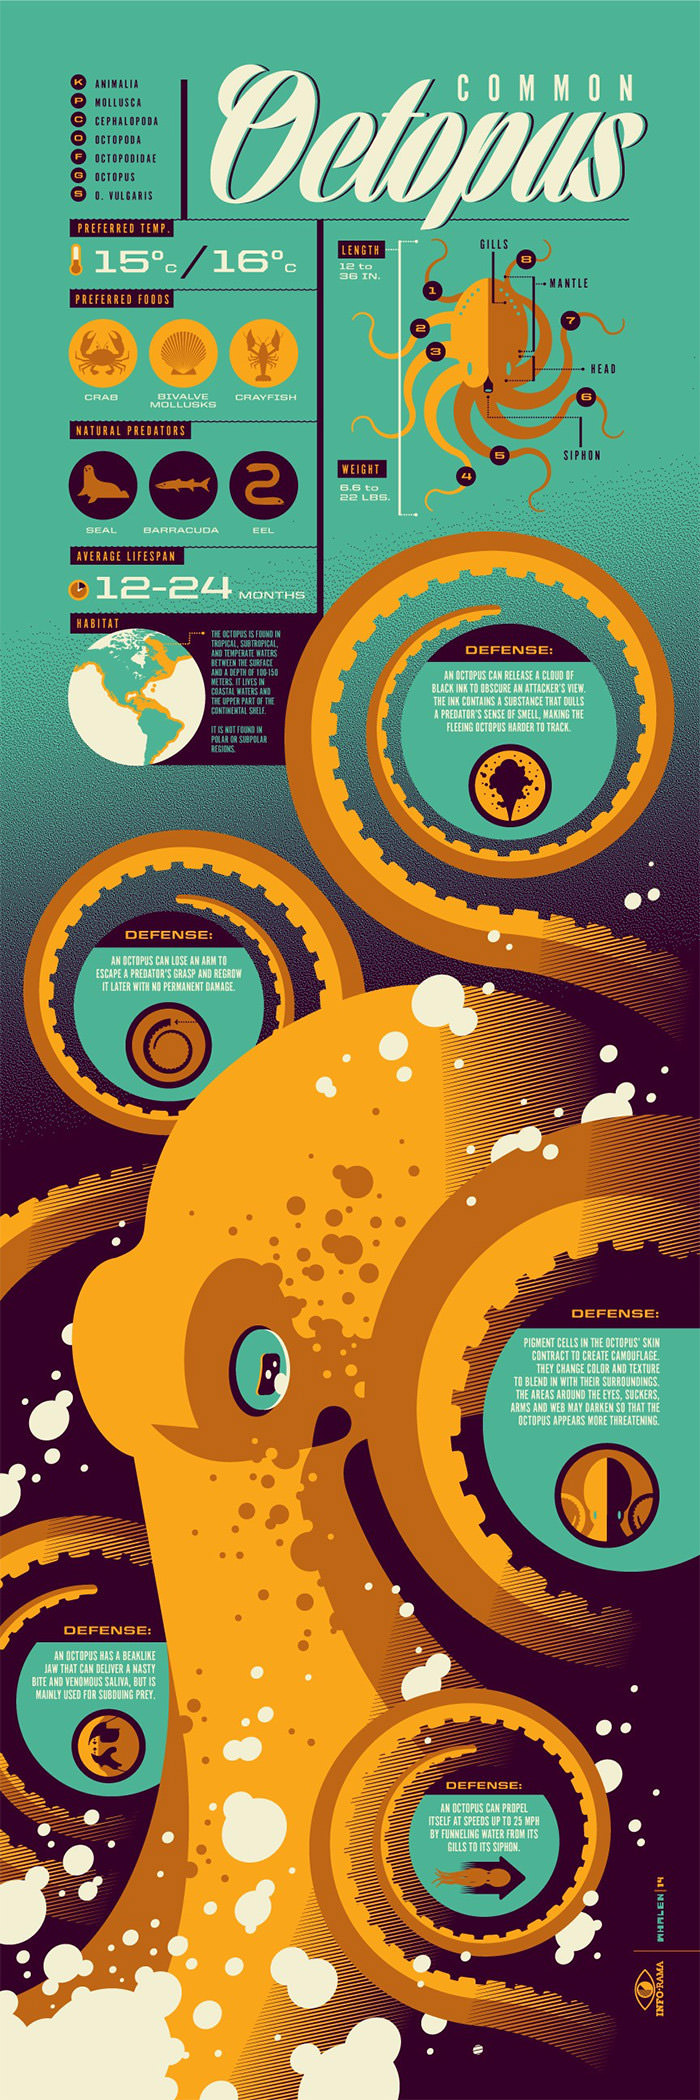 Awesome infographic poster